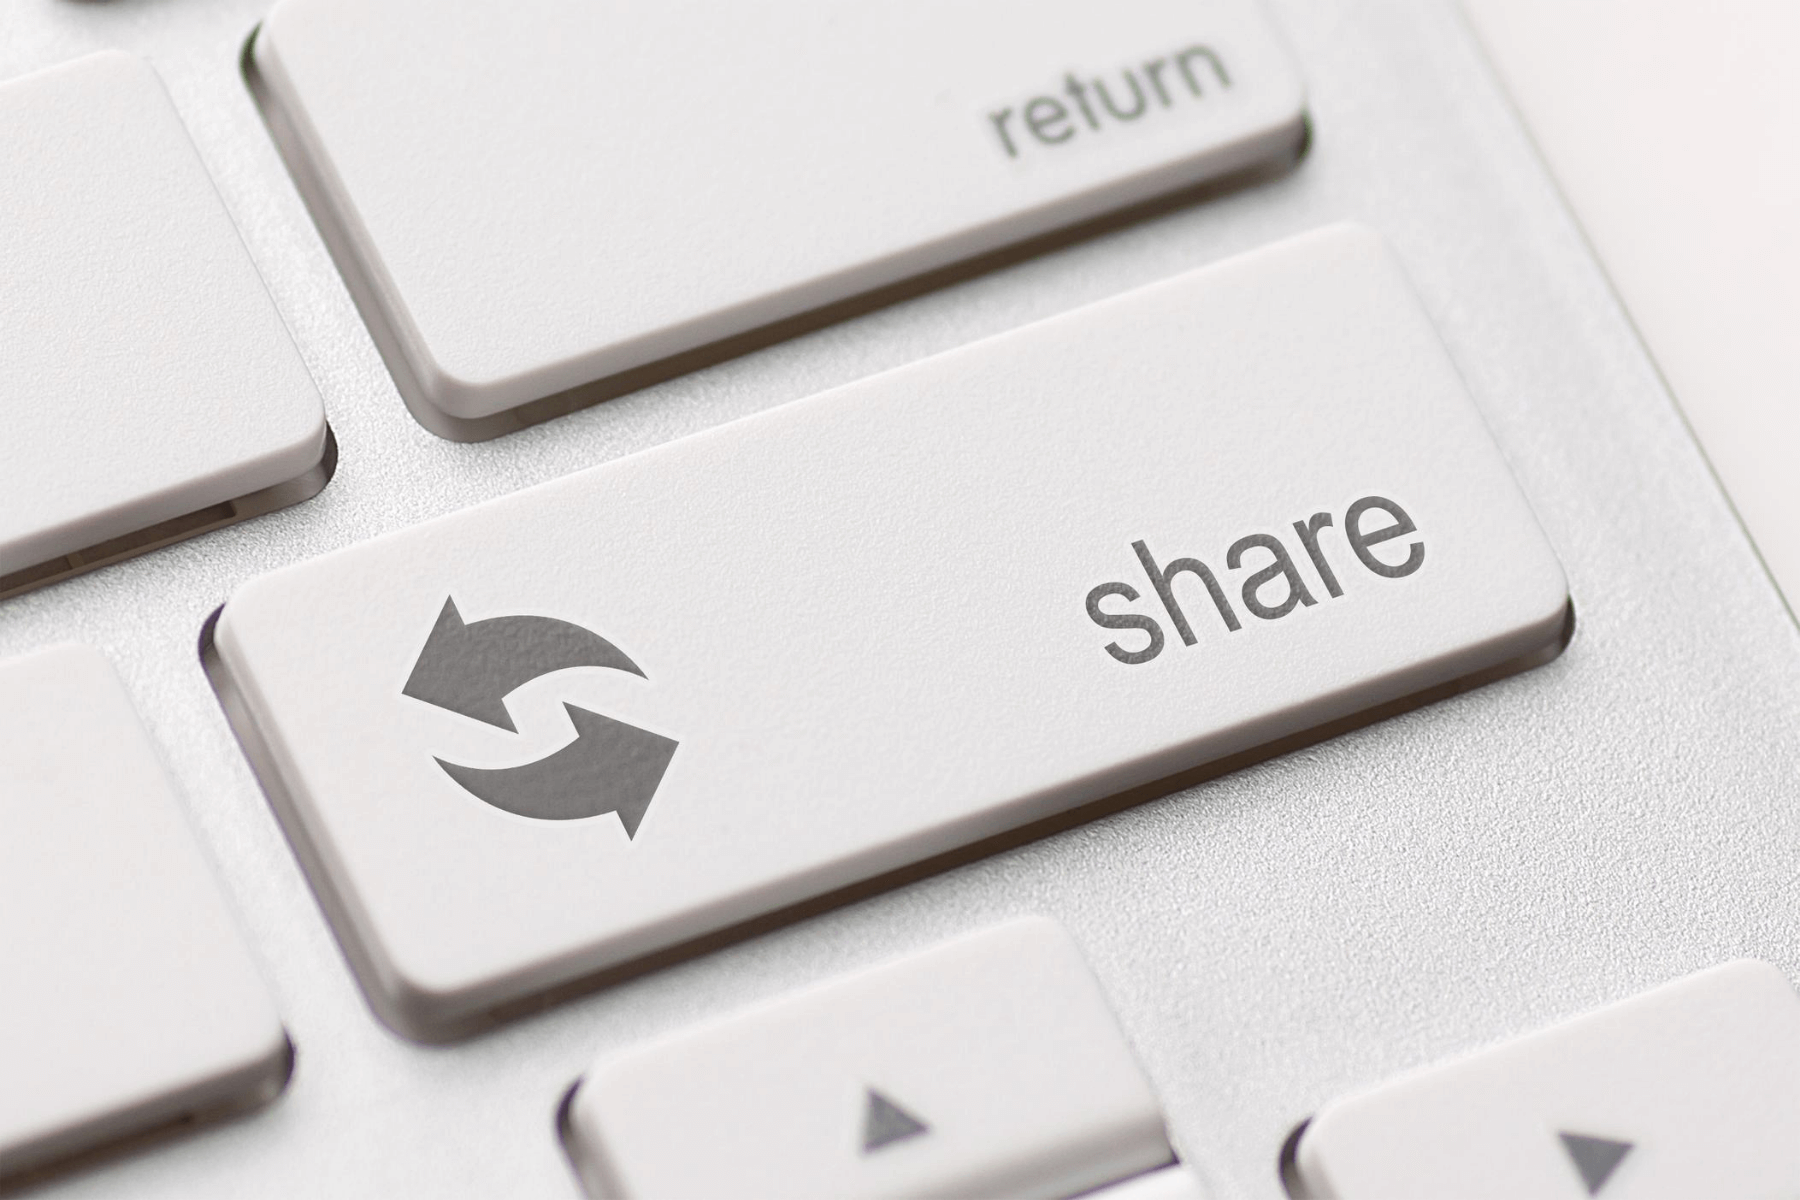 A button for sharing content